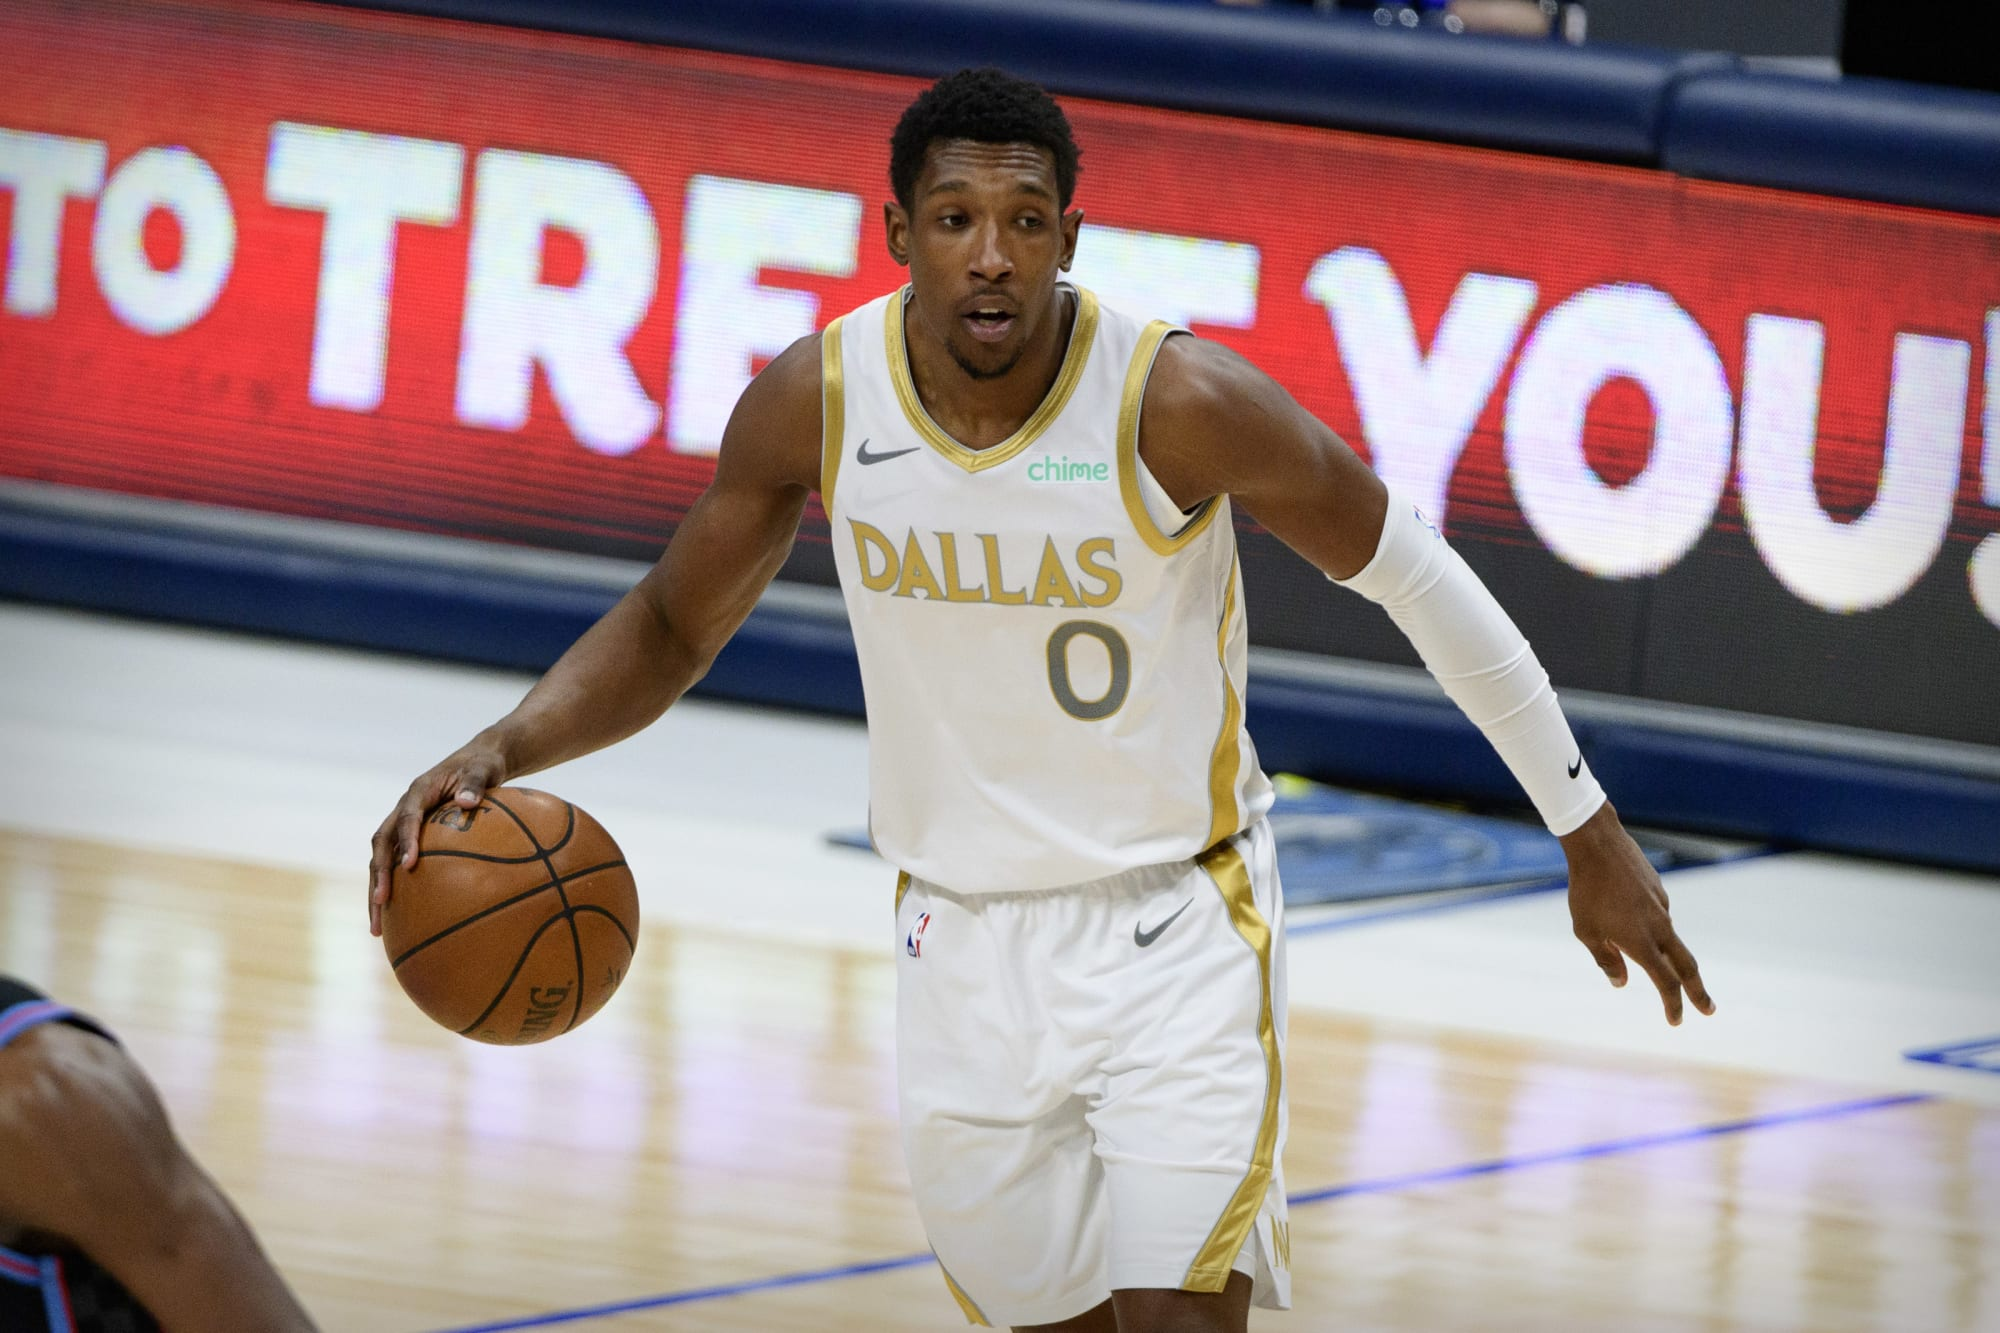 Dallas Mavericks: Josh Richardson leaves Dallas with a dilemma